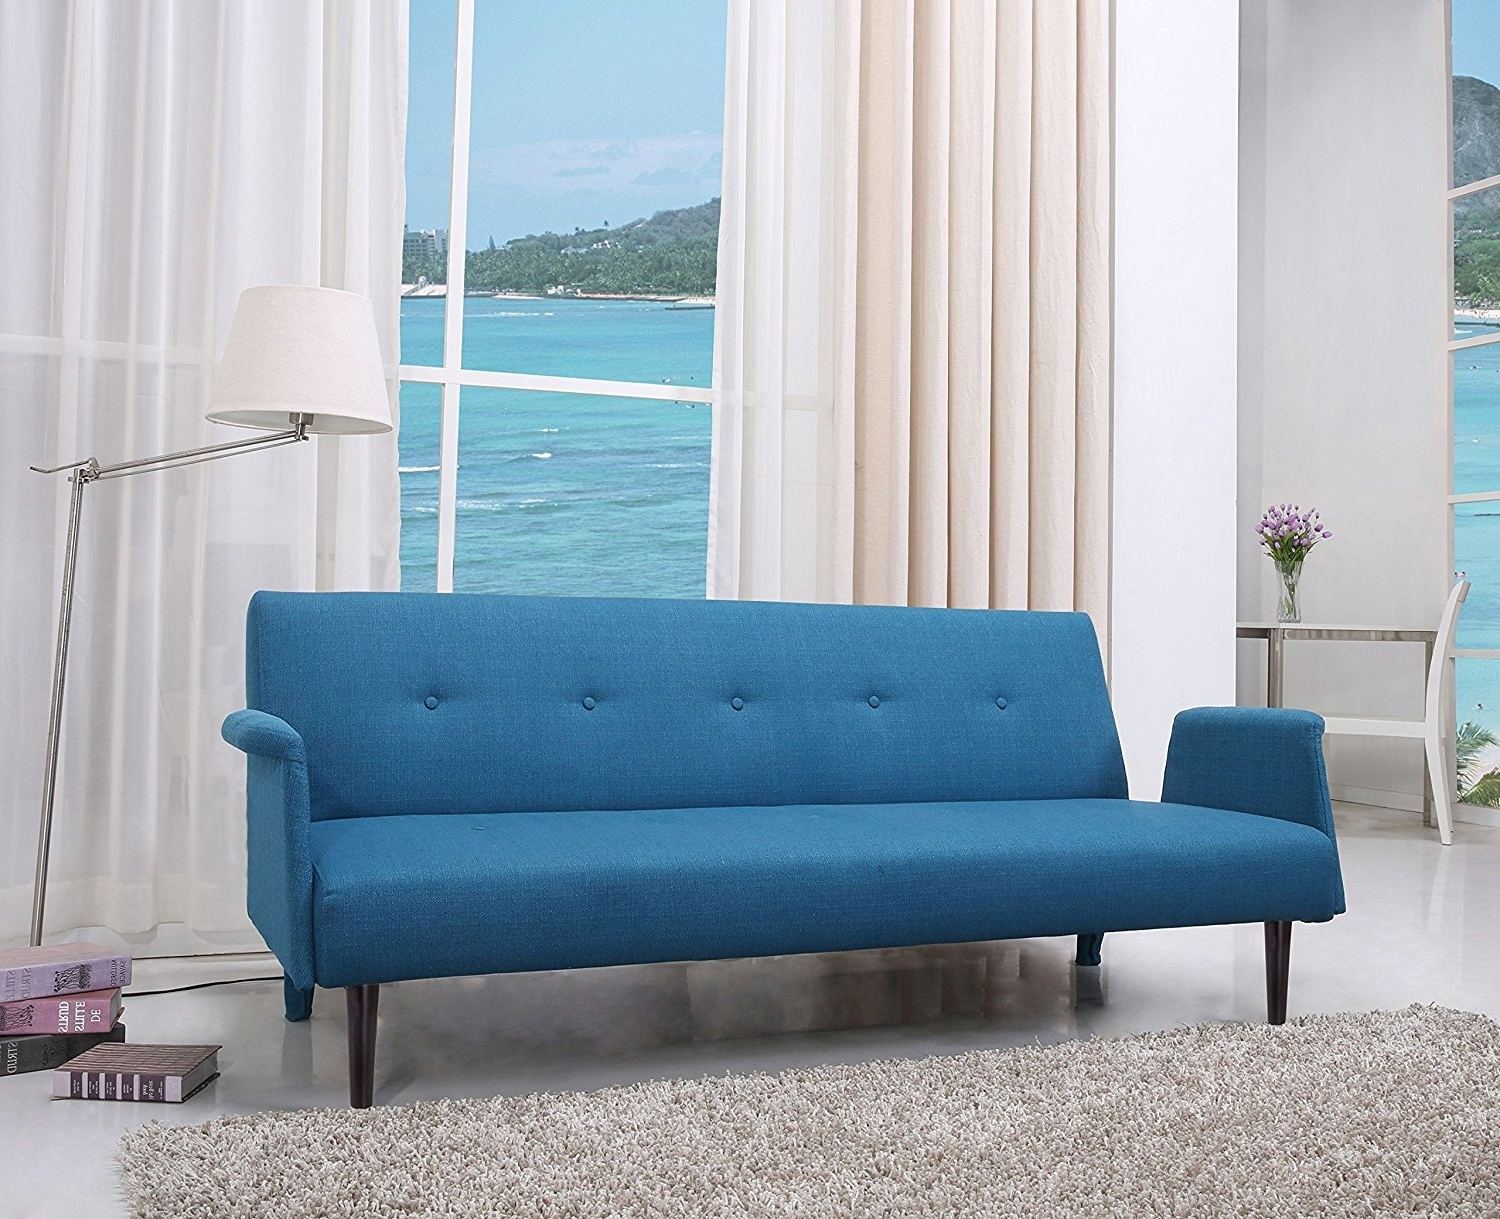 Aqua Sofas In Recent Amazon: Gold Sparrow Westminster Convertible Sofa Bed, Blue (View 2 of 15)